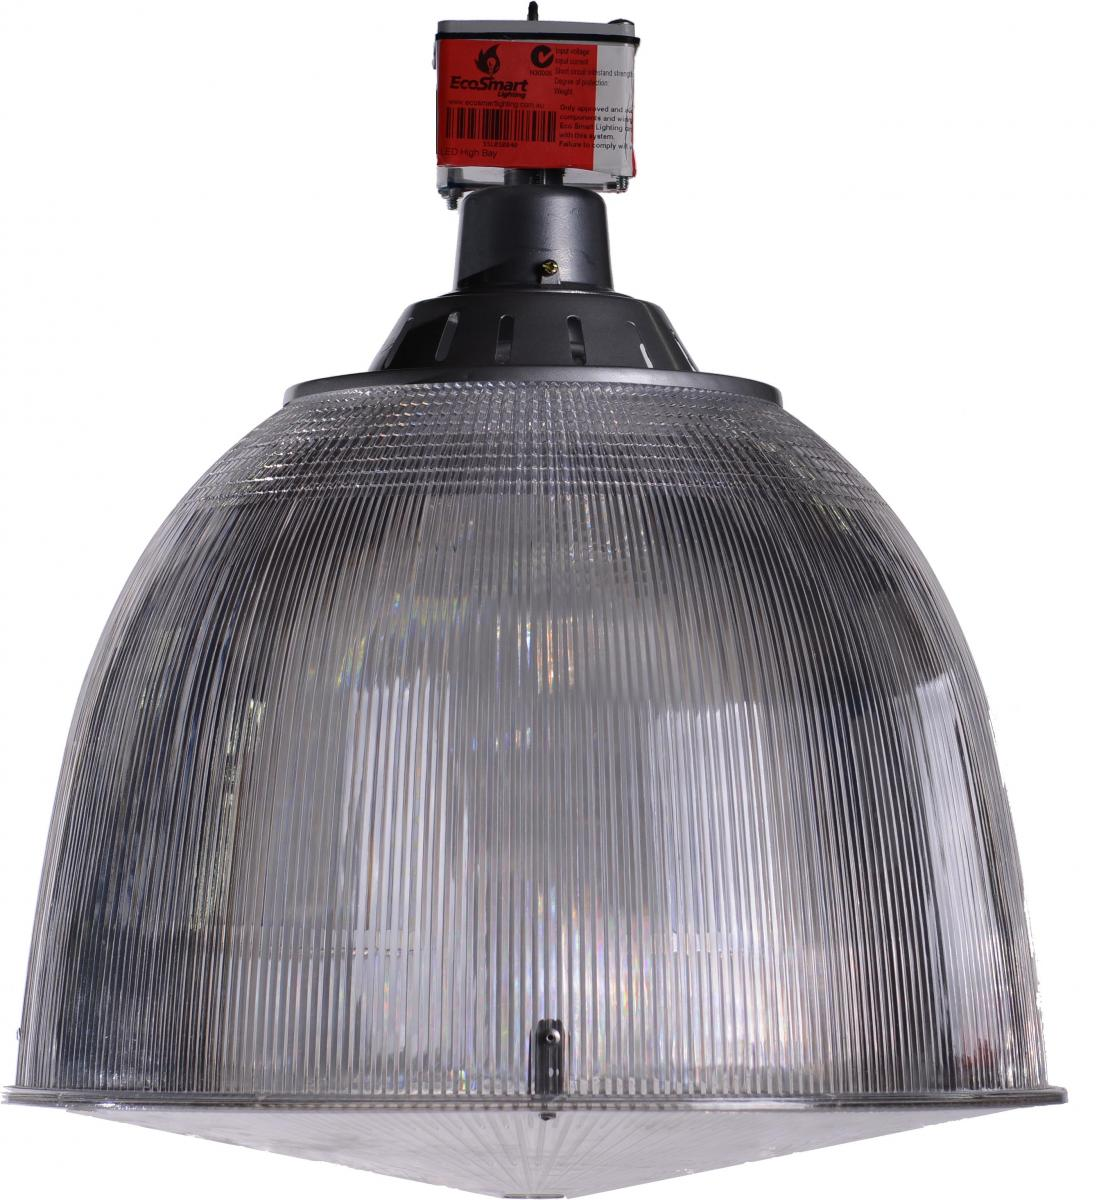 LED High bay Extra low voltage temporary lighting, safe, quick to install, plug in construction lighting